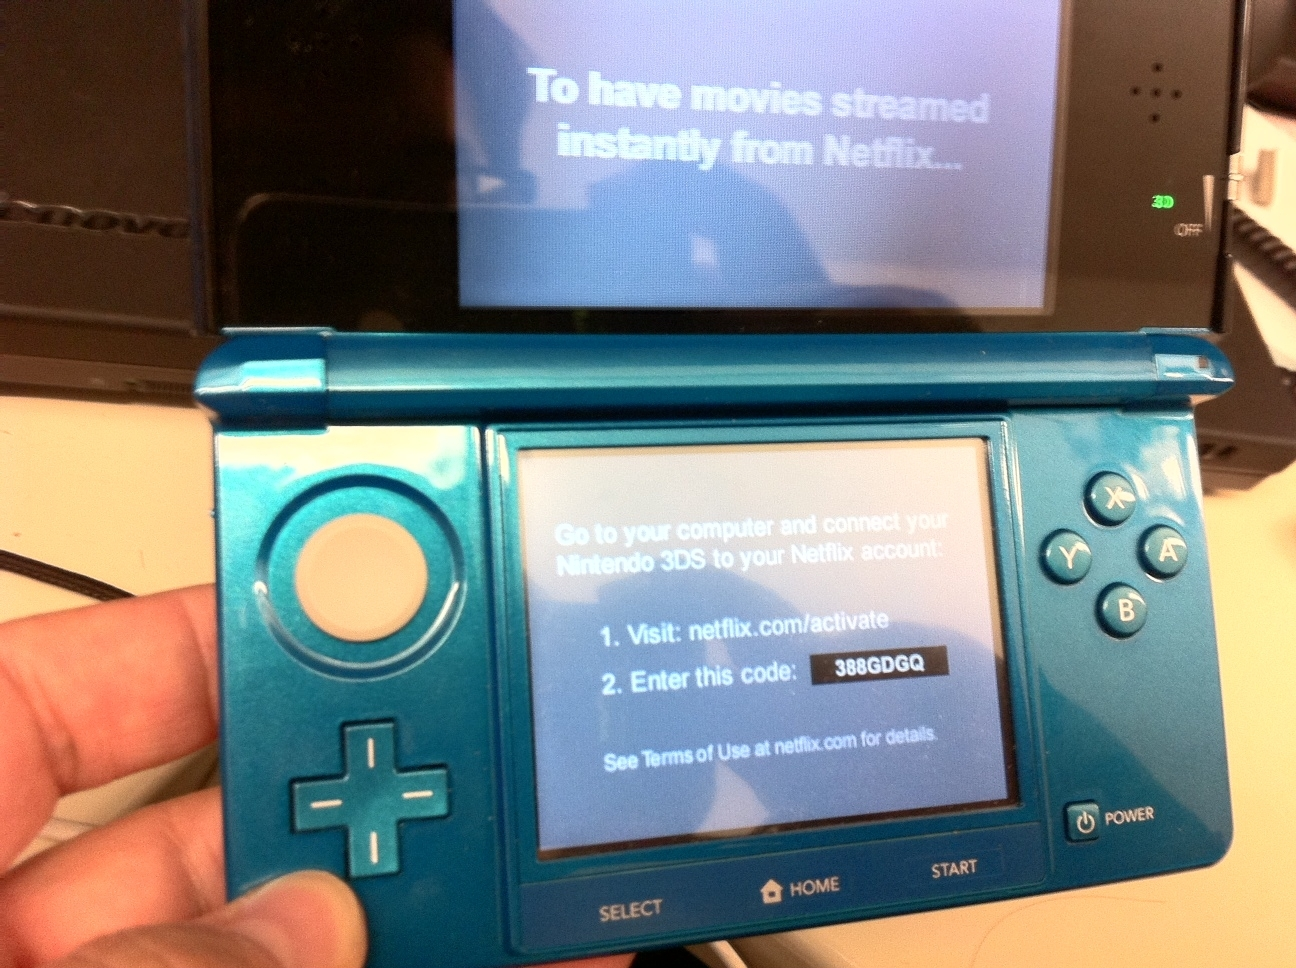 Netflix on the 3DS needs a Web browser to activate.